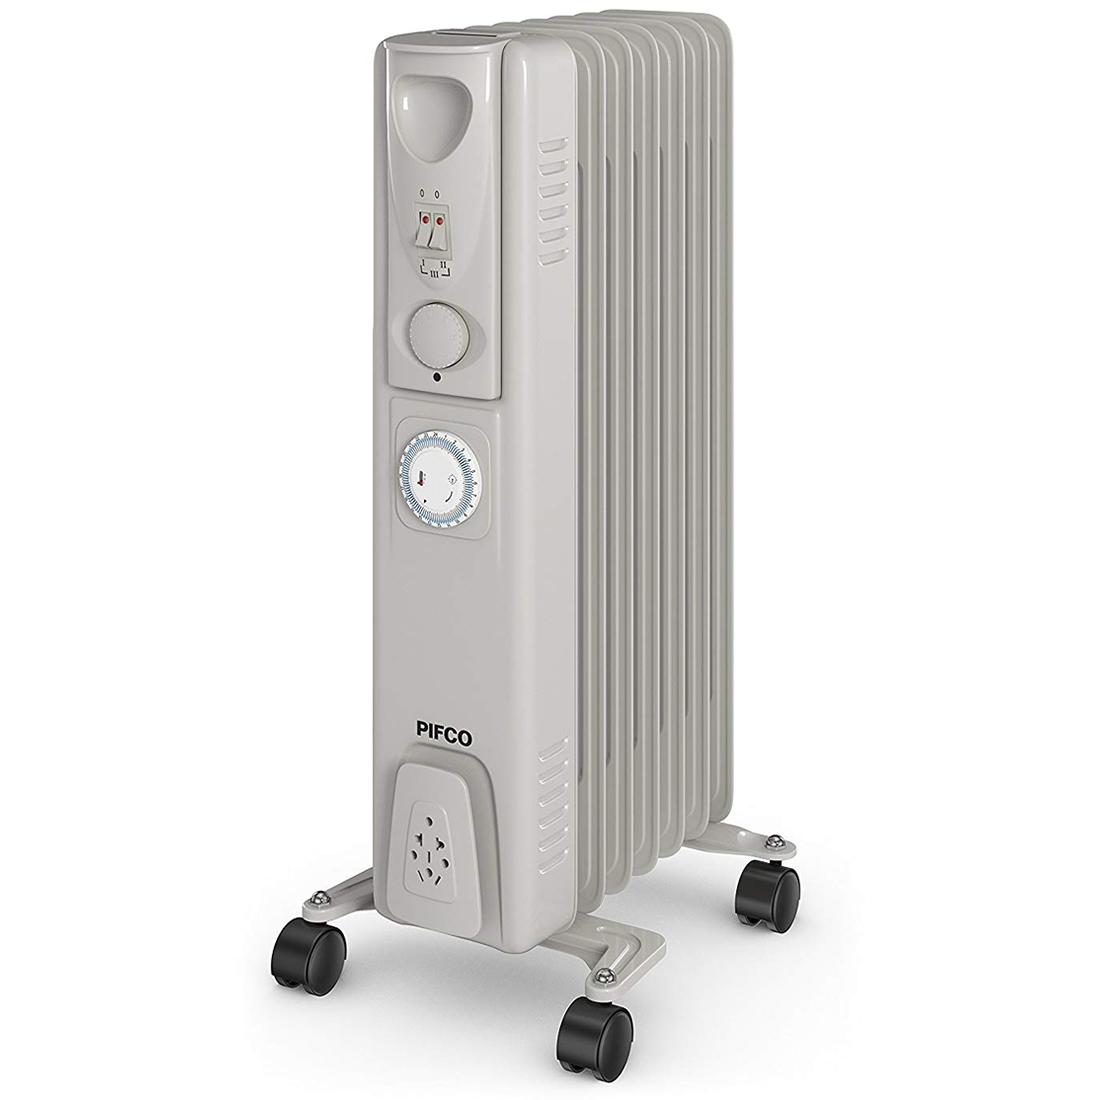 Cheapest price of 1.5kW Oil-Filled Radiator 3 Power Settings Timer White in new is £44.99